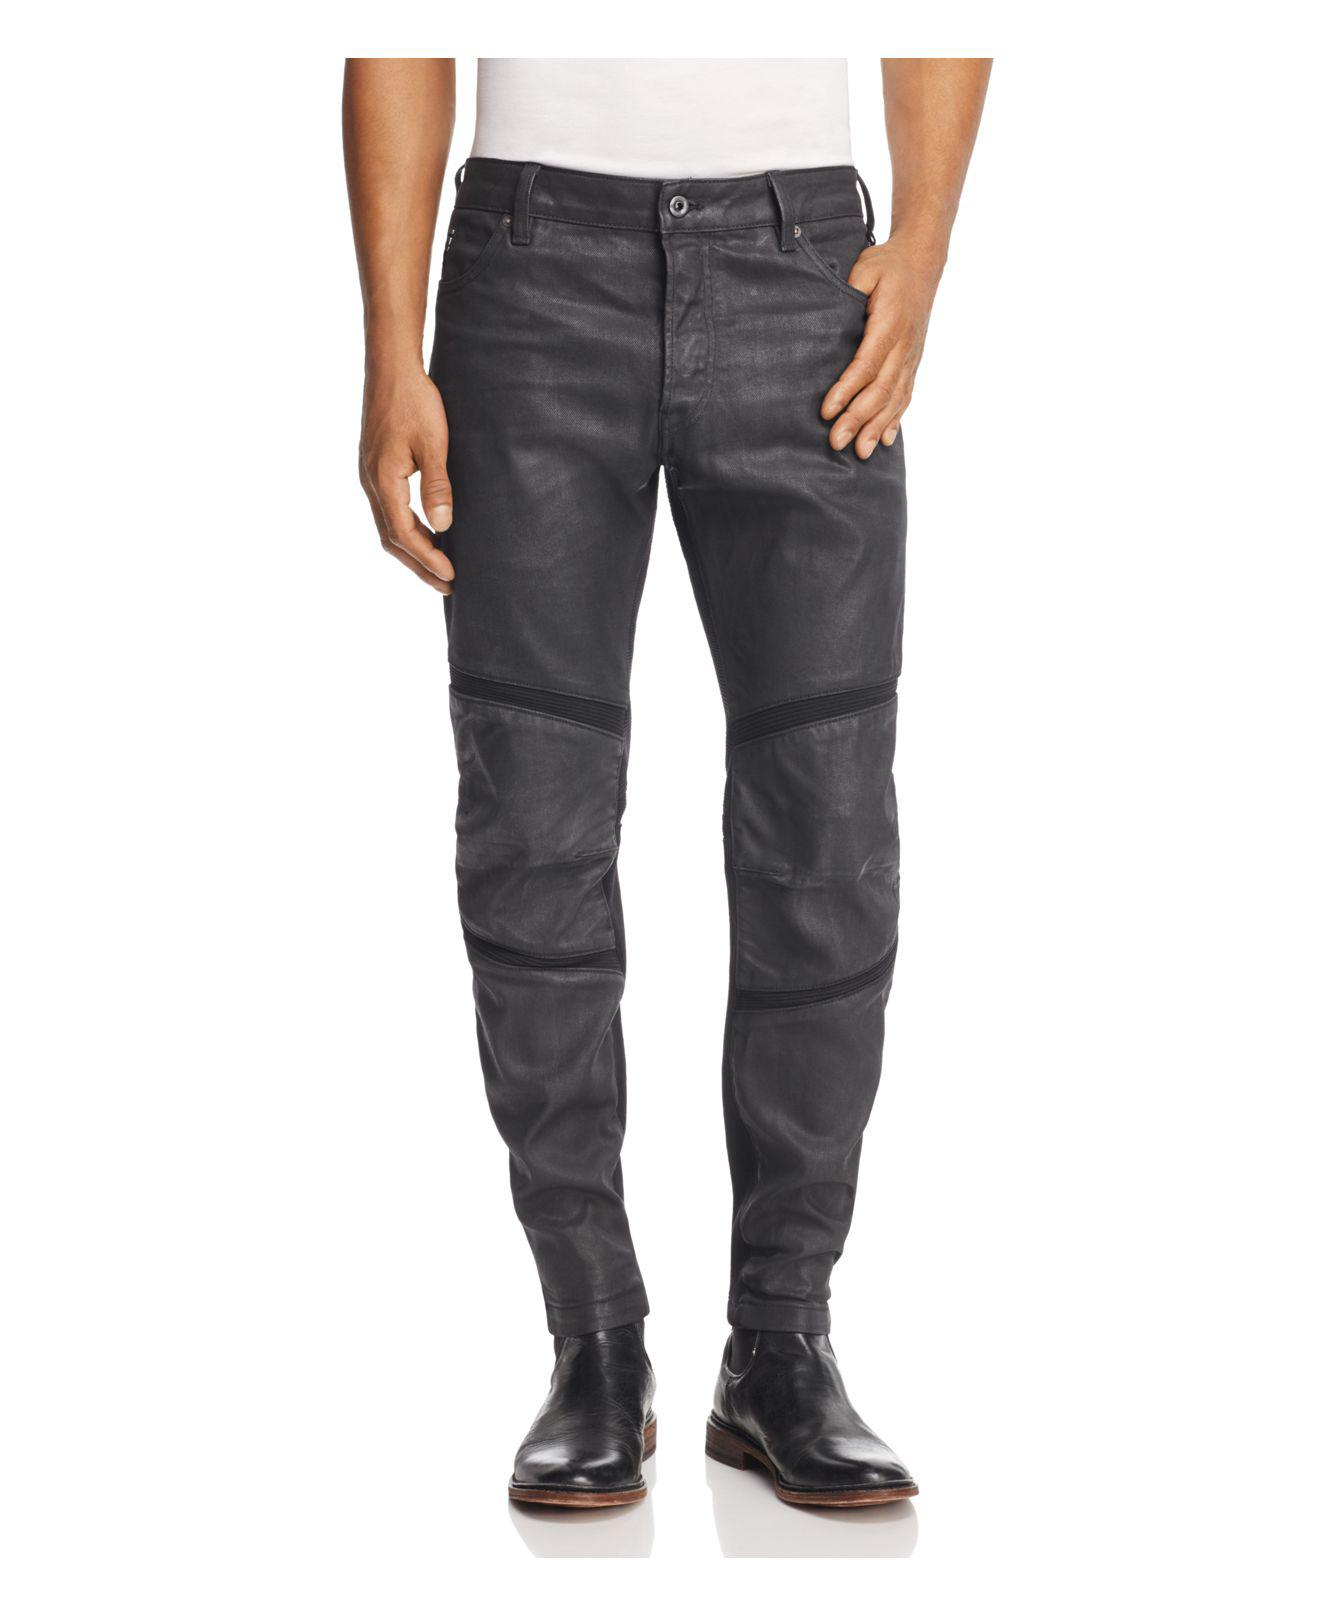 09d5d040e39 G-Star RAW Motac 3d Slim Fit Coated Jeans In Dark Grey in Gray for ...